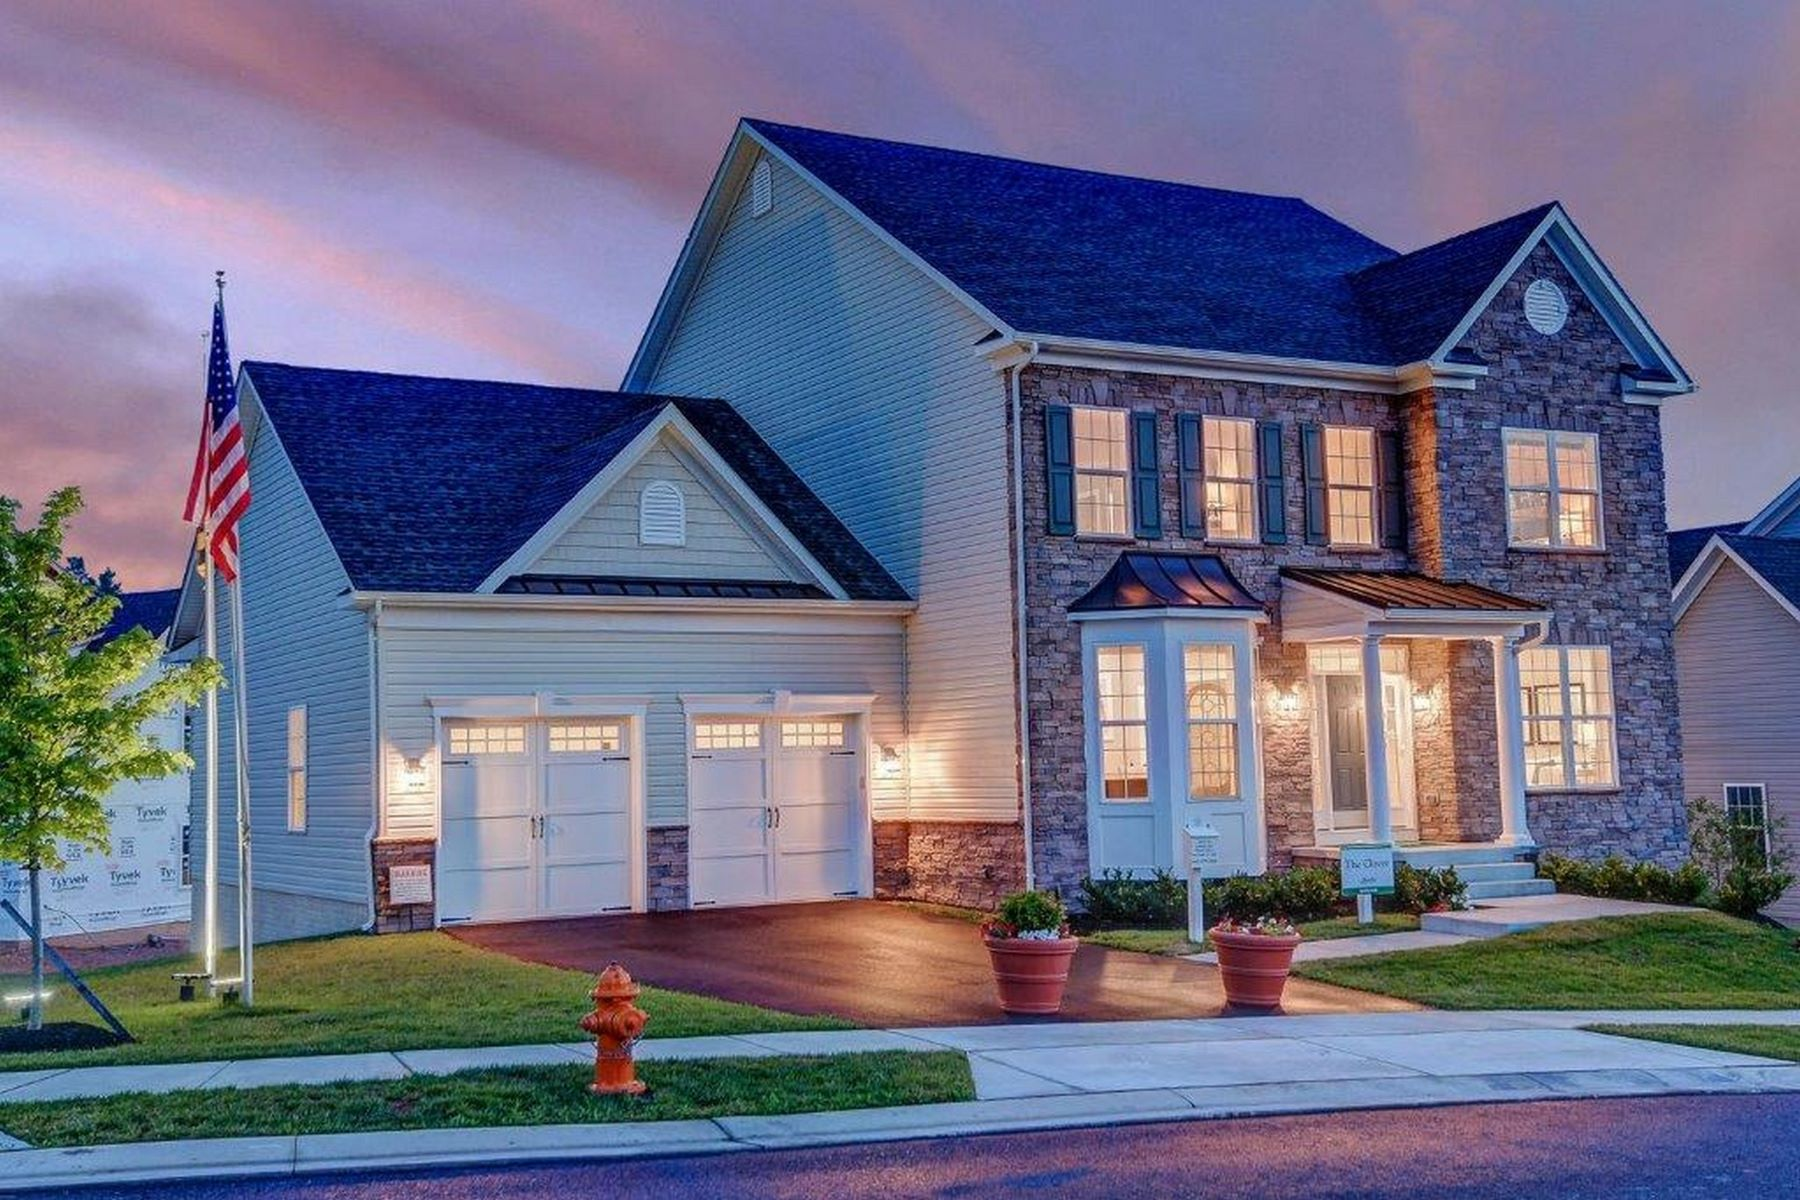 Single Family Homes for Sale at Chapel Knoll Estates 10816 White Trillium Road Perry Hall, Maryland 21128 United States